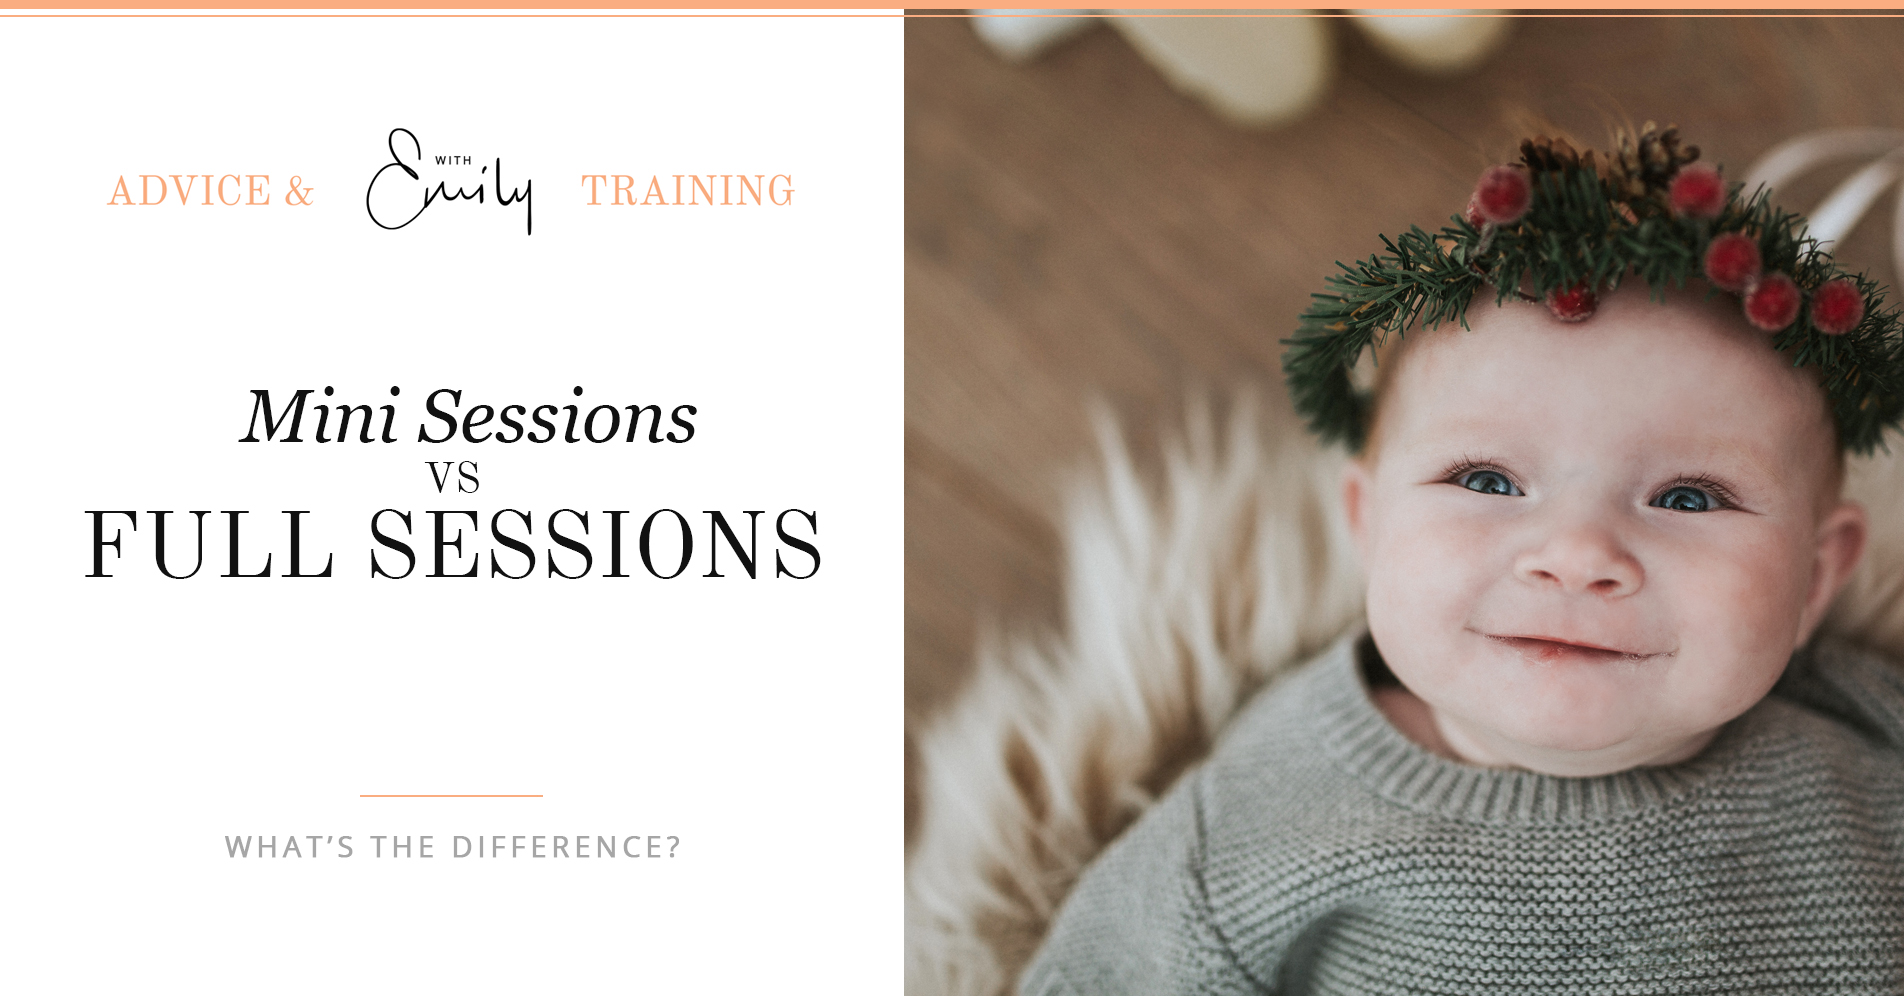 Mini Sessions vs Full Sessions – What's the difference?